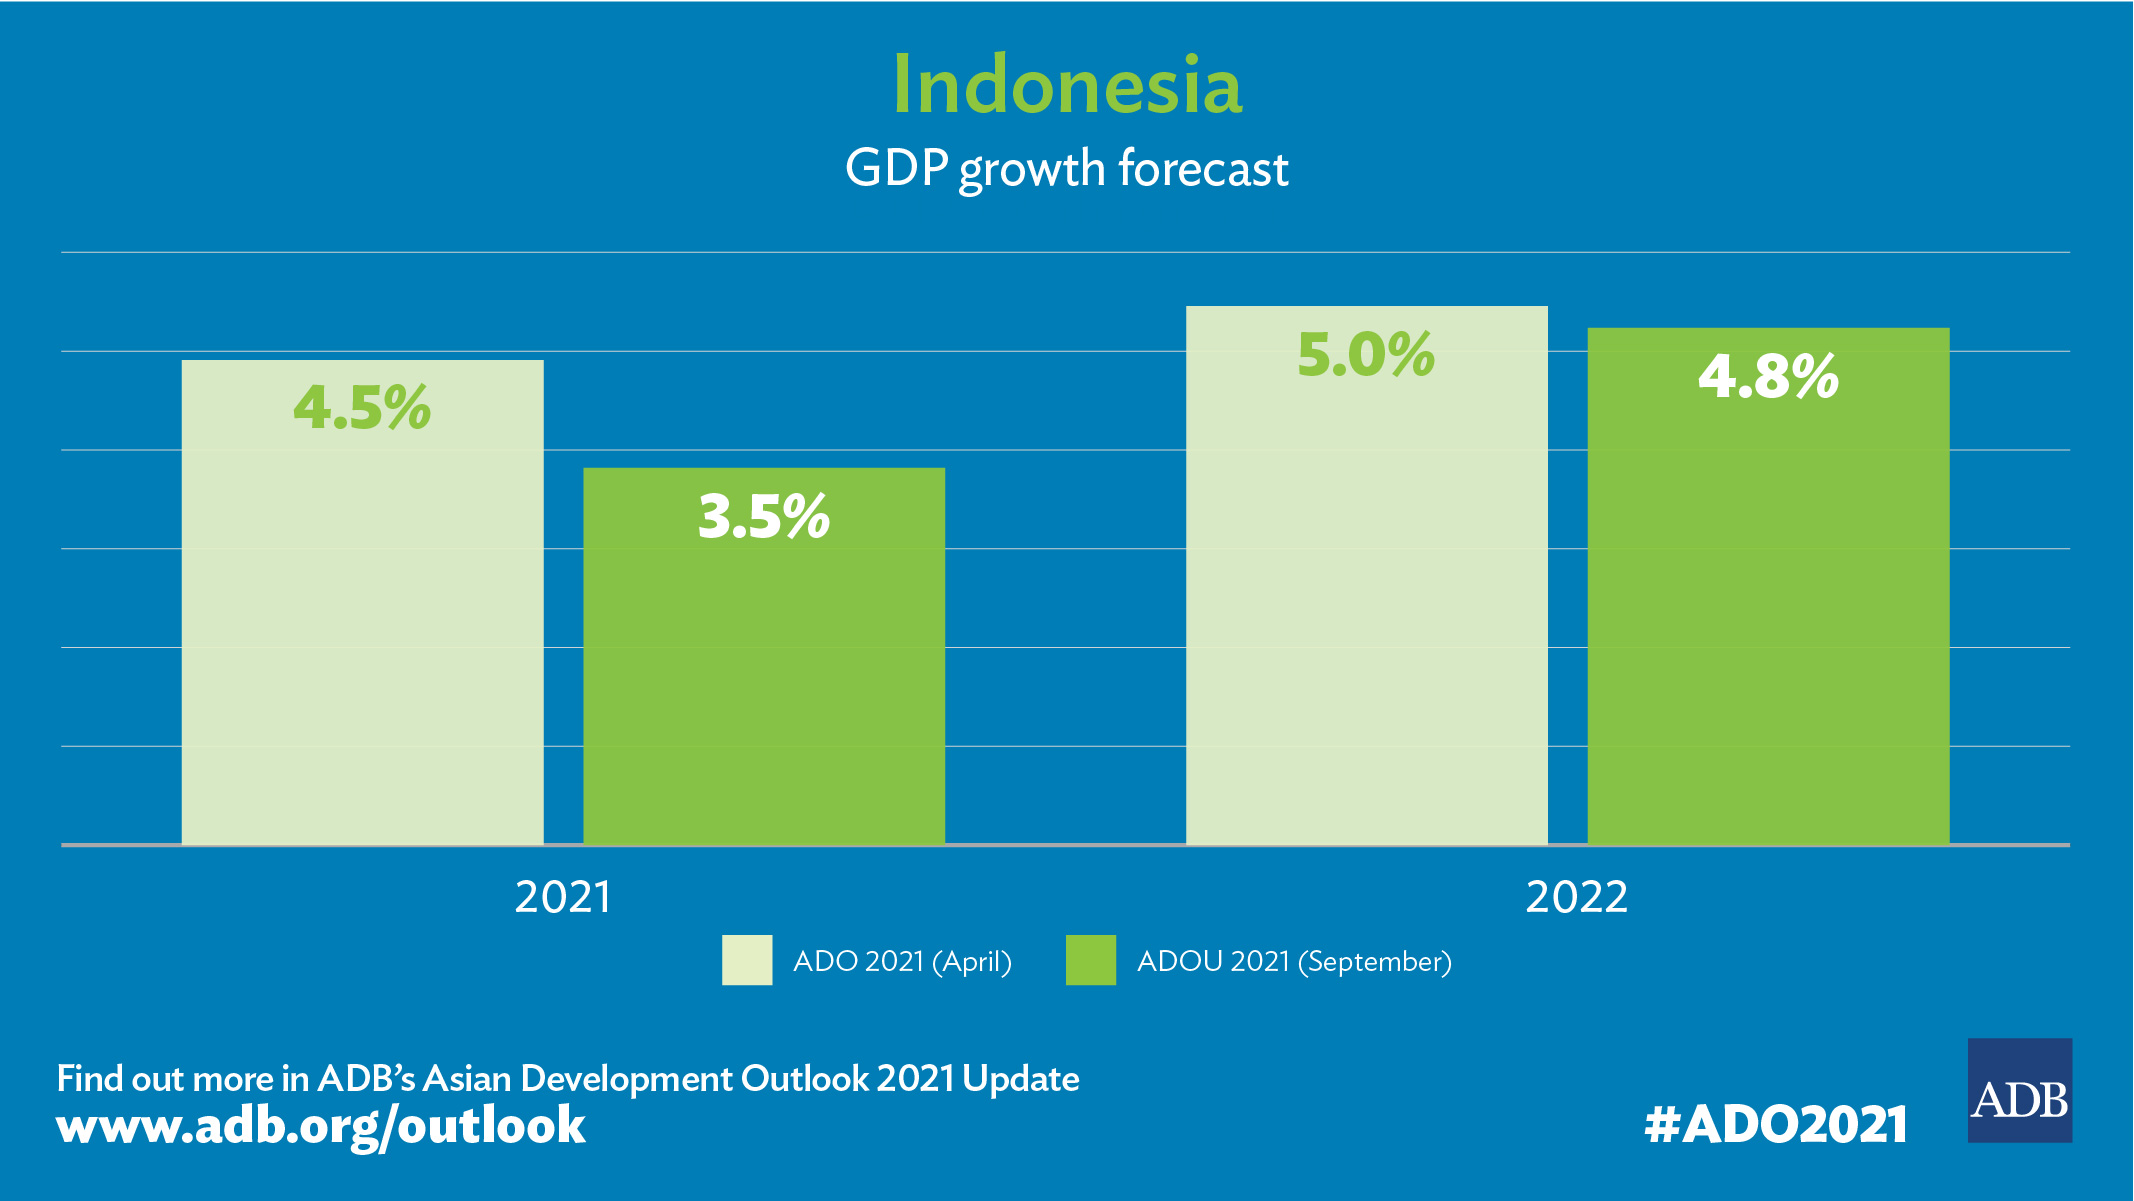 Indonesia's Economy Projected to Grow by 3.5% in 2021 Amid Headwinds